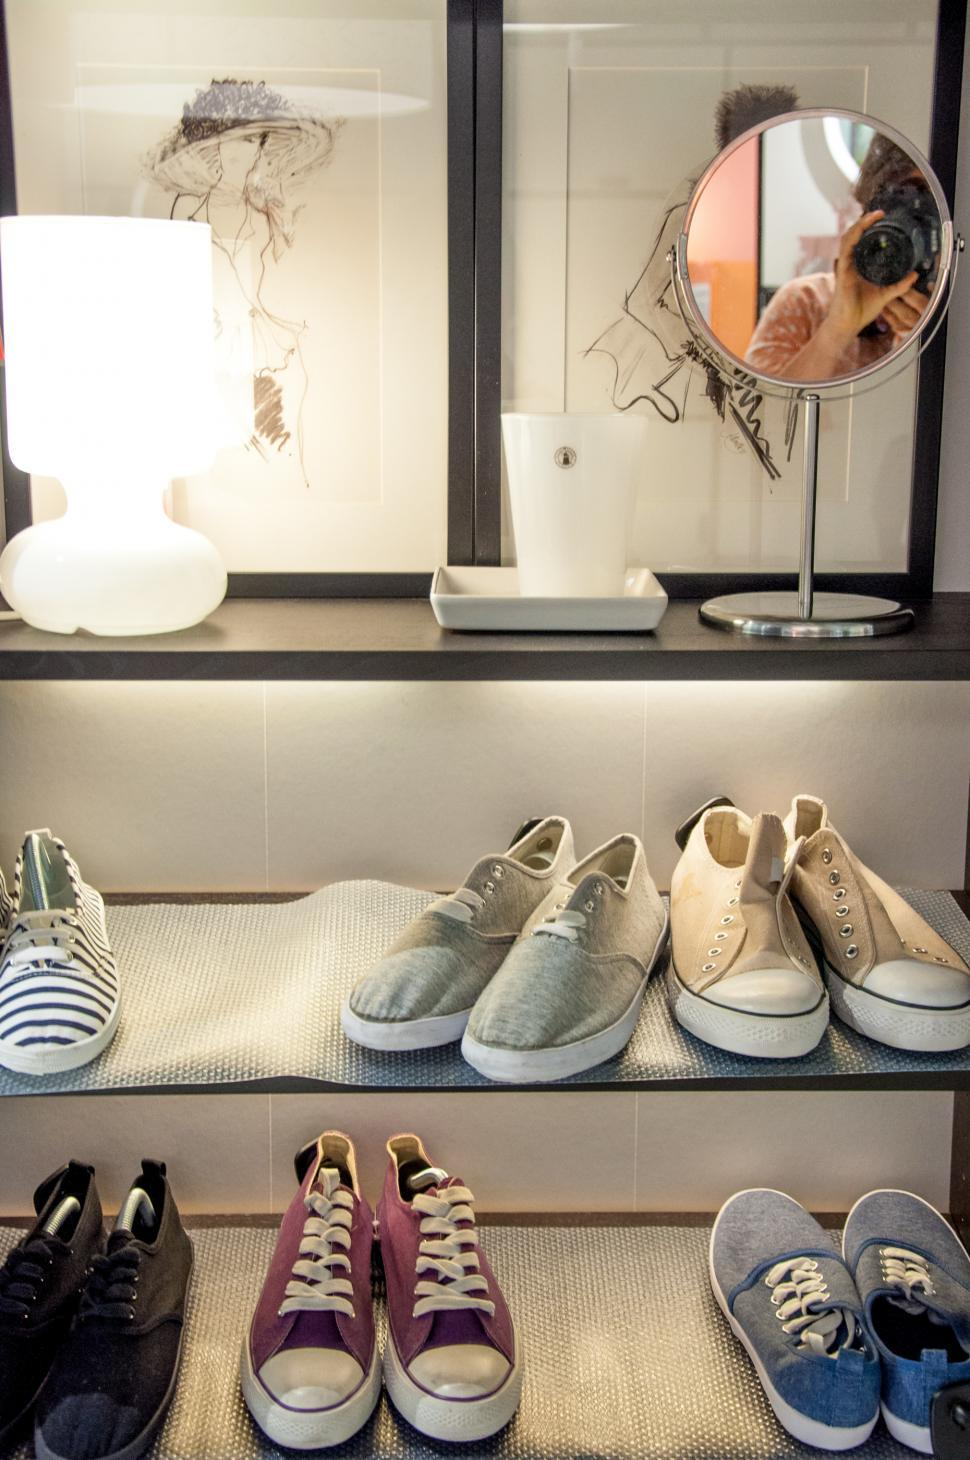 Download Free Stock Photo of closet with shoes